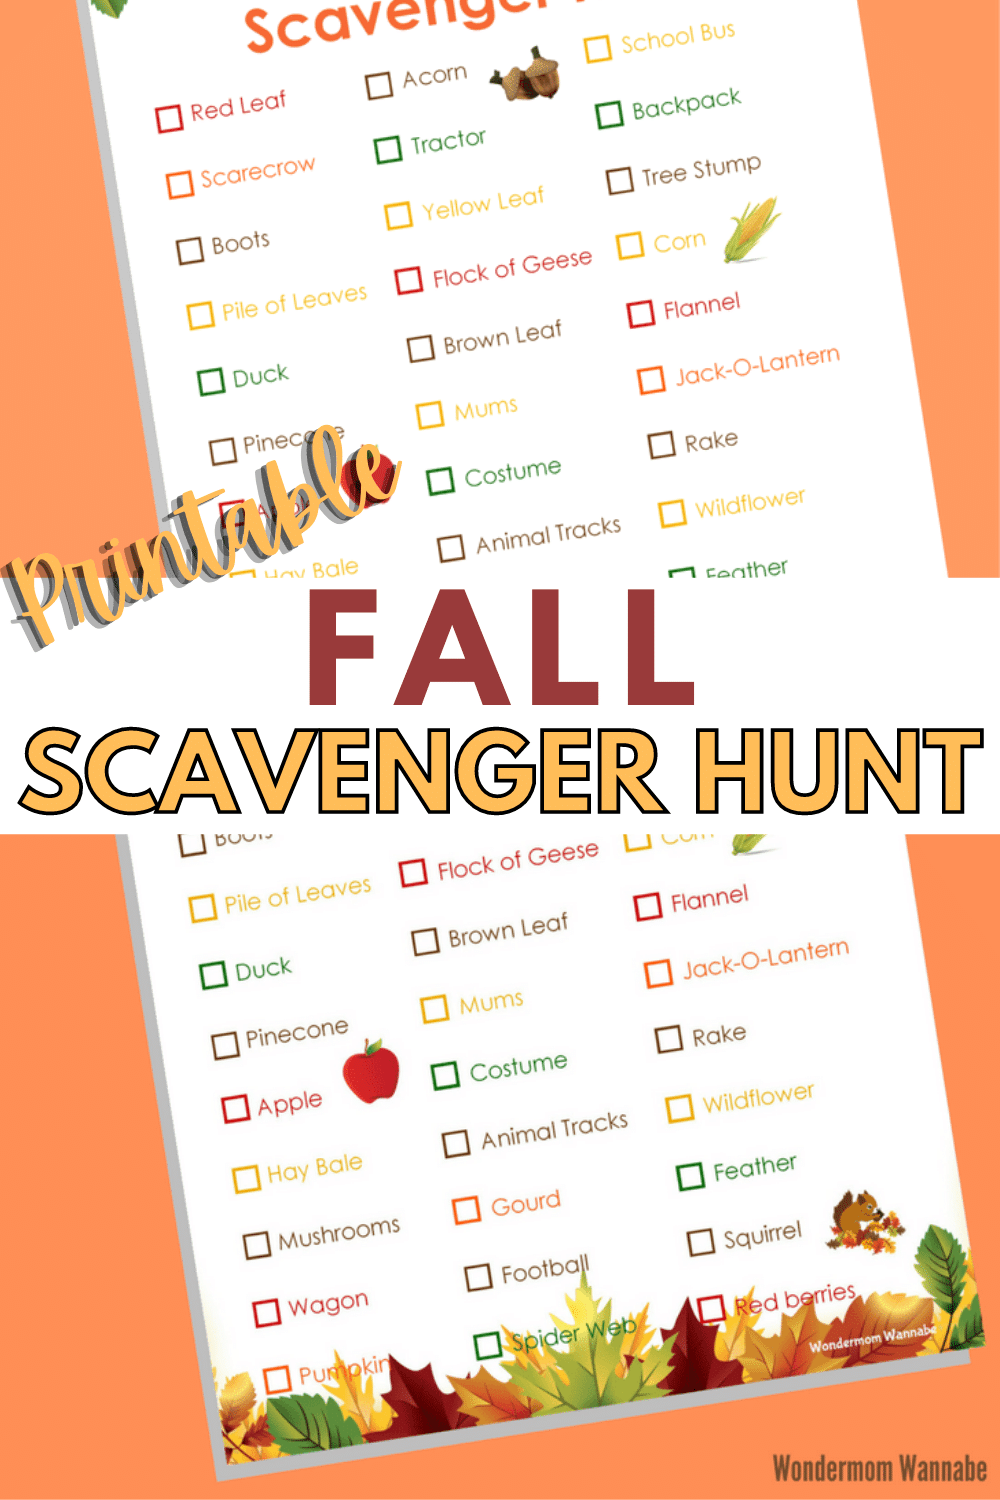 This printable fall scavenger hunt is fa fun and easy way to encourage kids to get outside and explore. #fall #scavengerhunt #kidsactivities #outdooractivities via @wondermomwannab